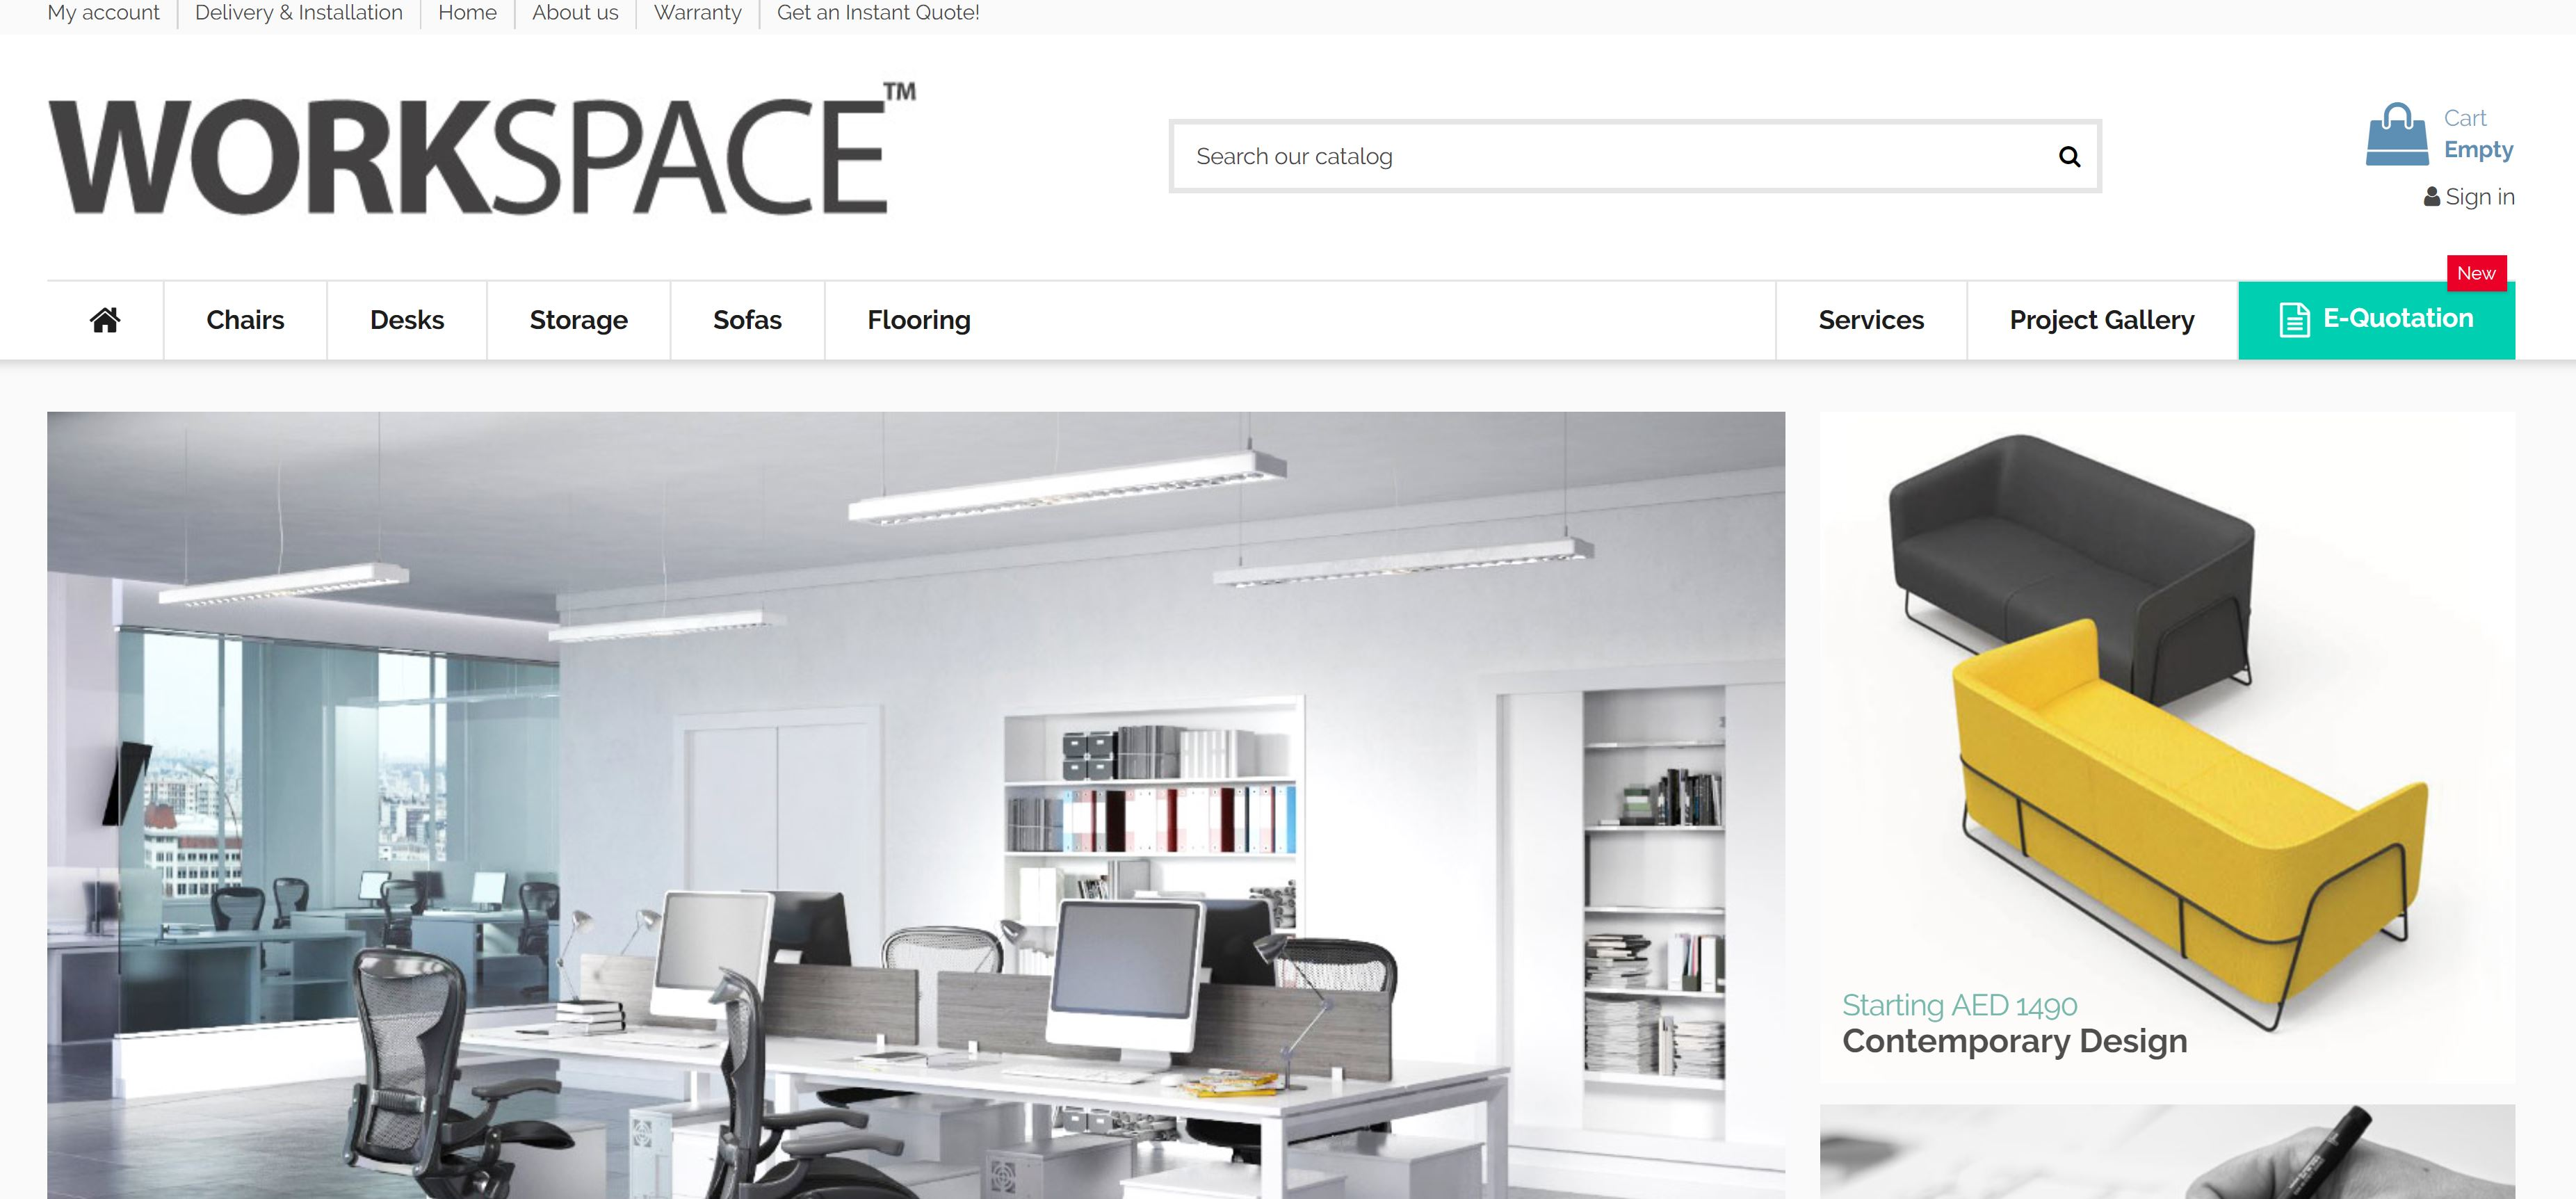 Workspace.ae Launching Interest-Free Office Furniture Finance Solution for Startups in Dubai